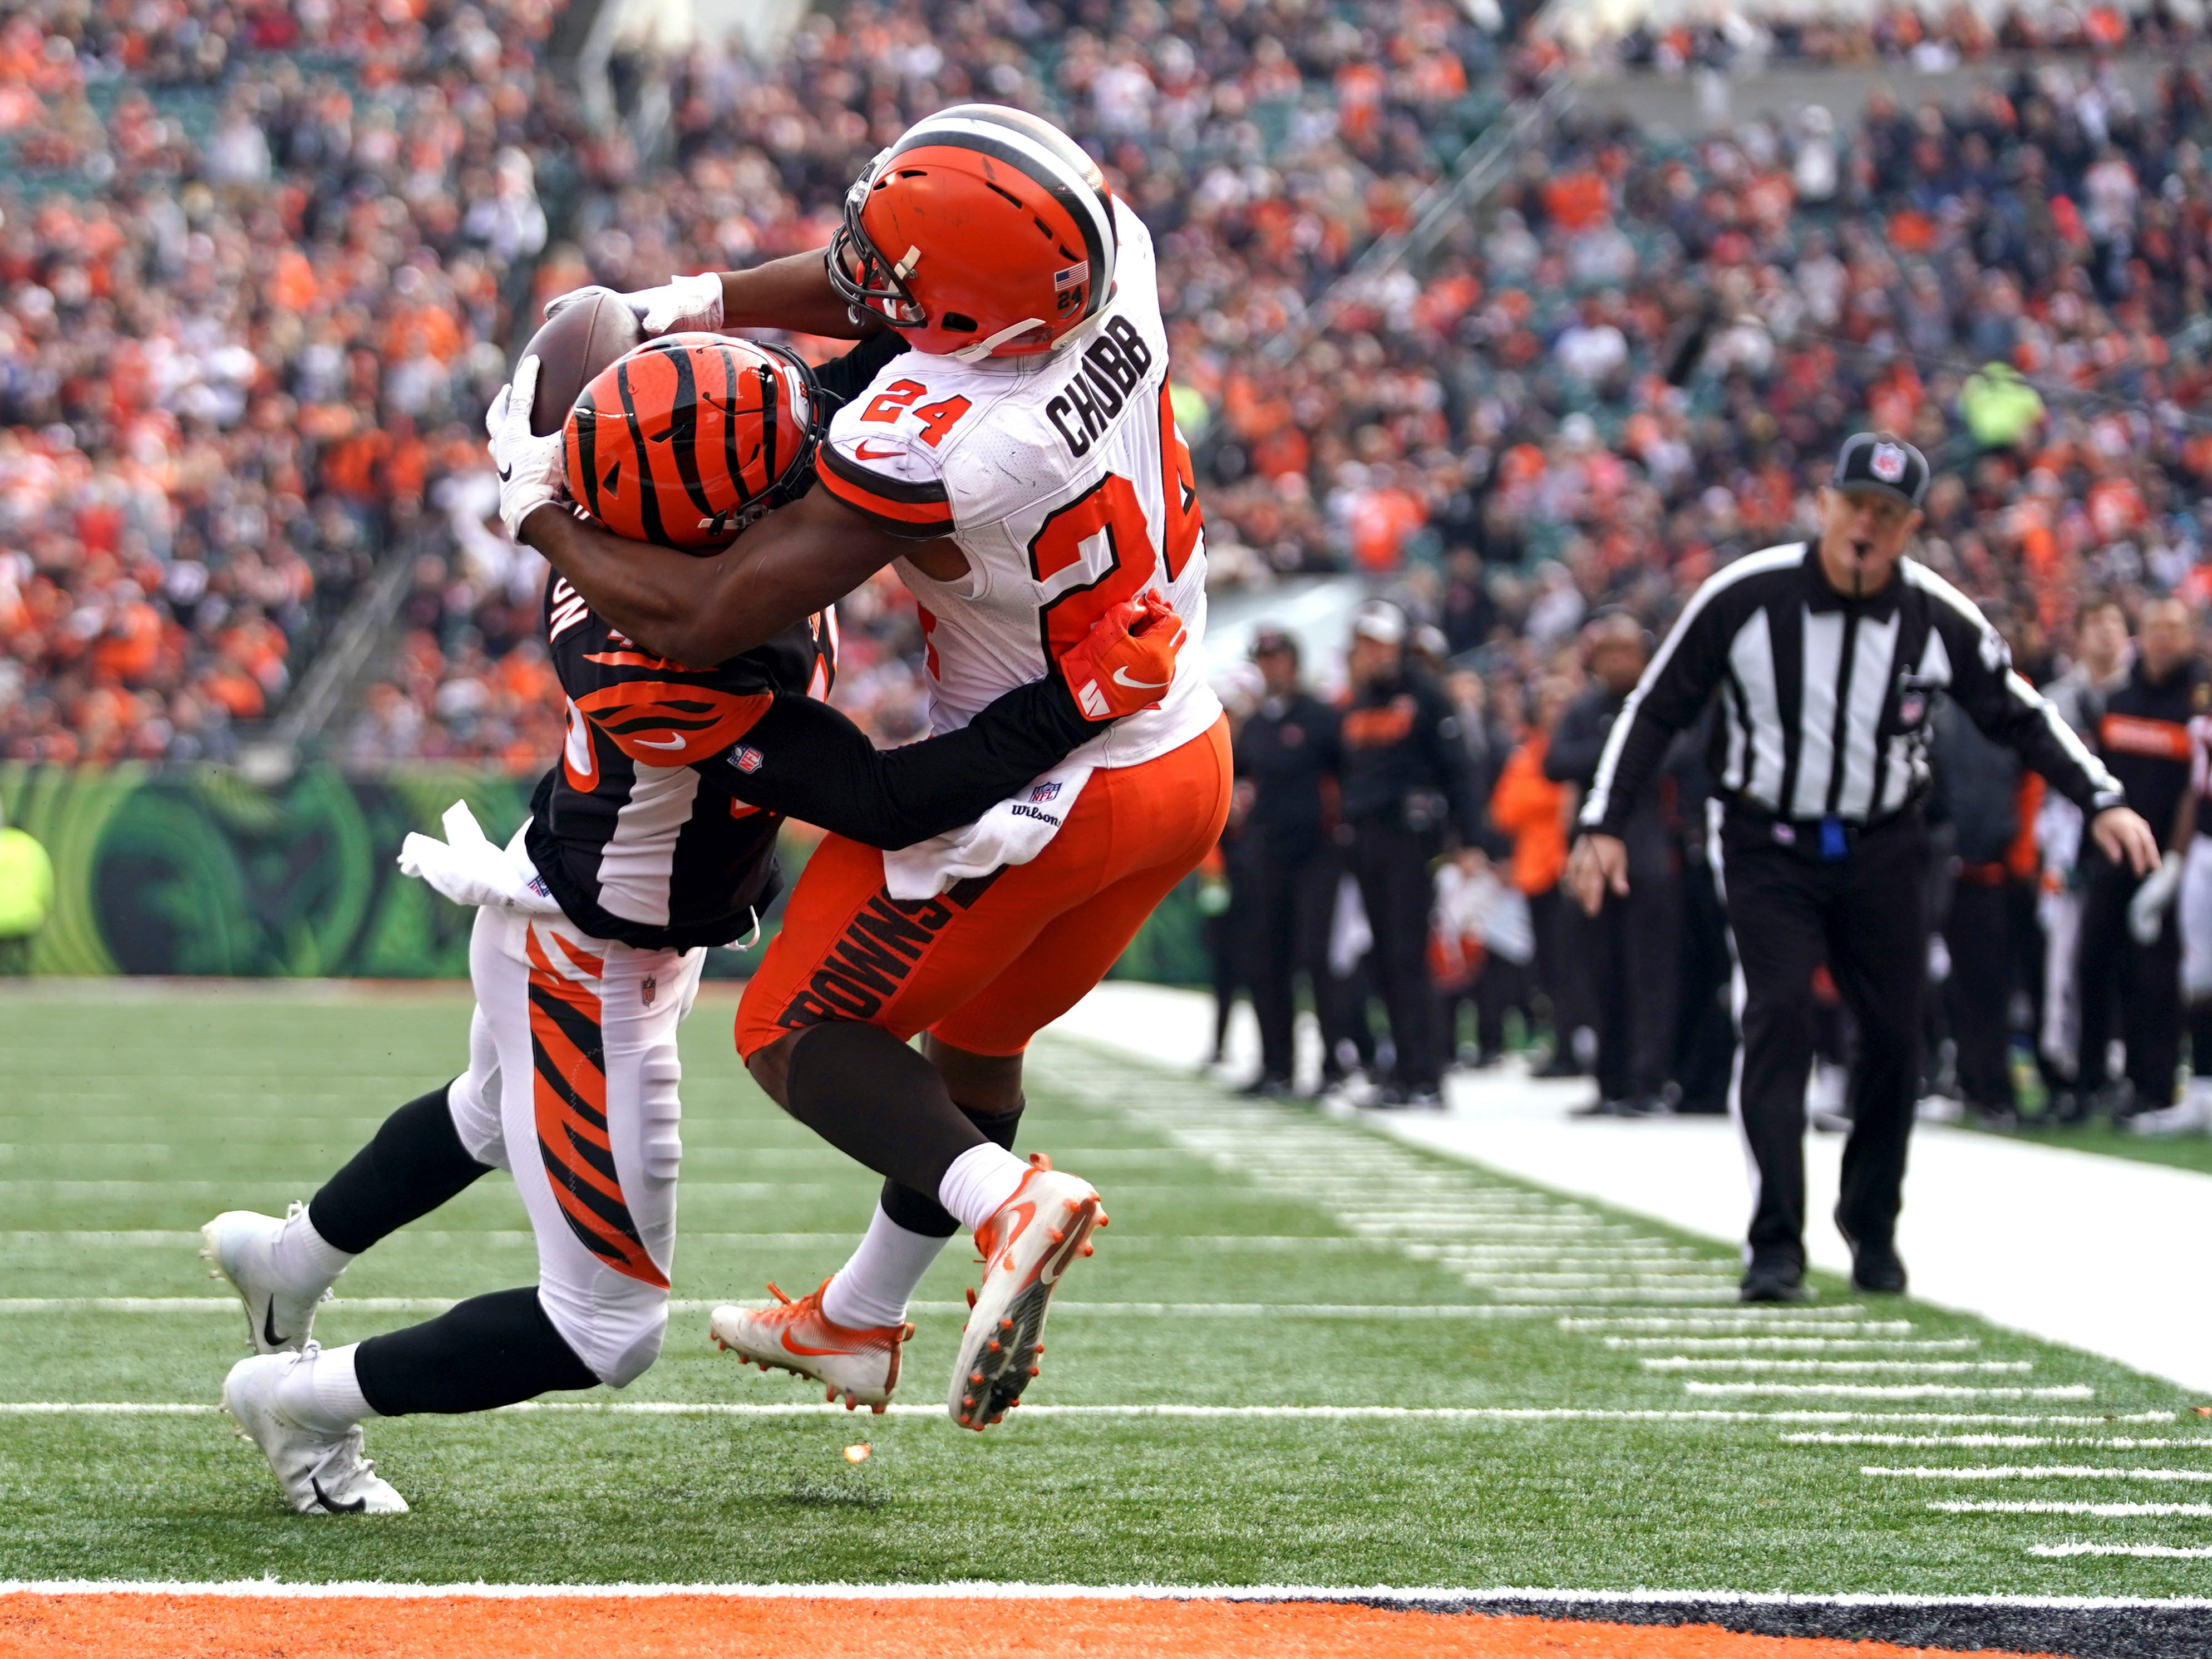 Cleveland Browns running back Nick Chubb reaches behind the helmet of Cincinnati Bengals defensive back Brandon Wilson to catch a touchdown pass in Week 12.